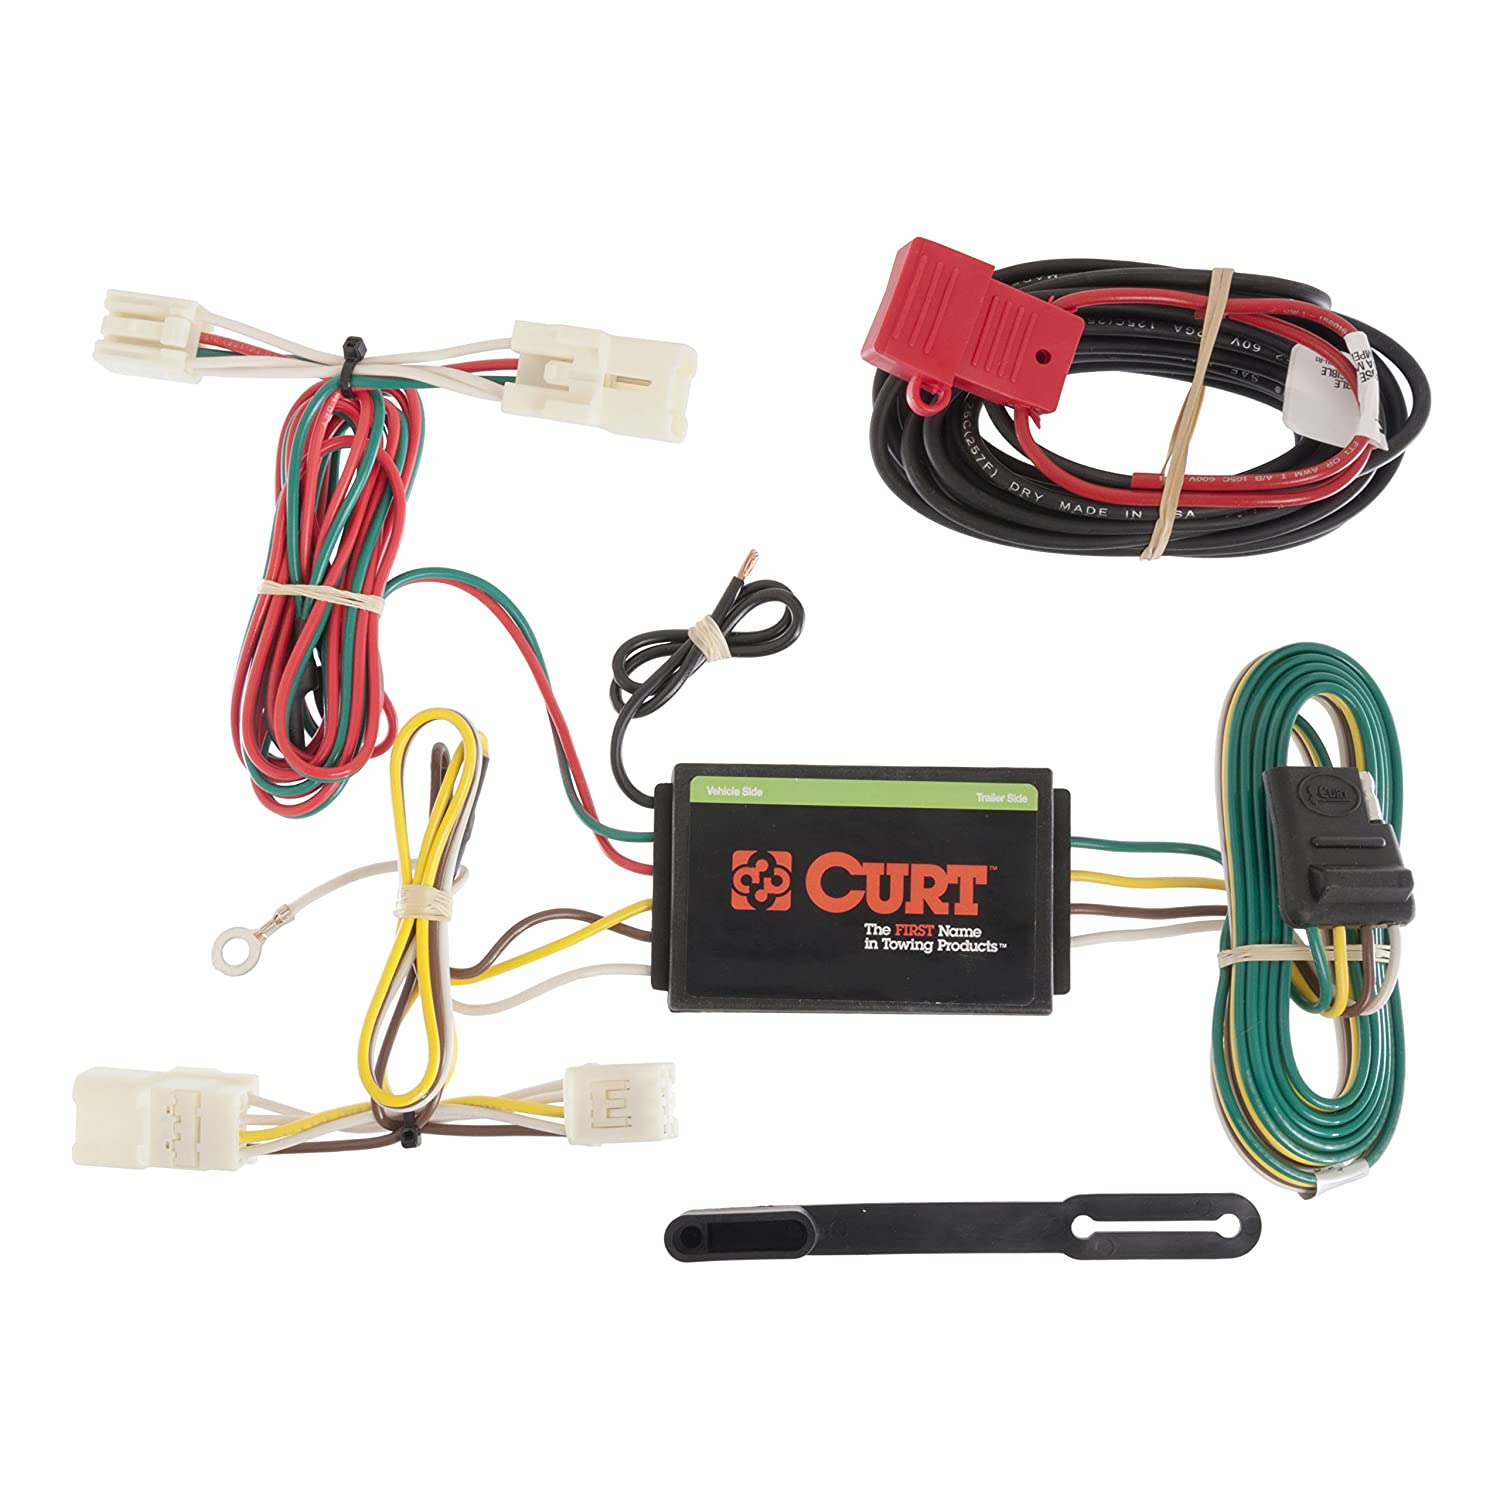 817l7jcQOtL._SL1500_ amazon com curt 56165 custom wiring harness automotive t one vehicle wiring harness at gsmx.co